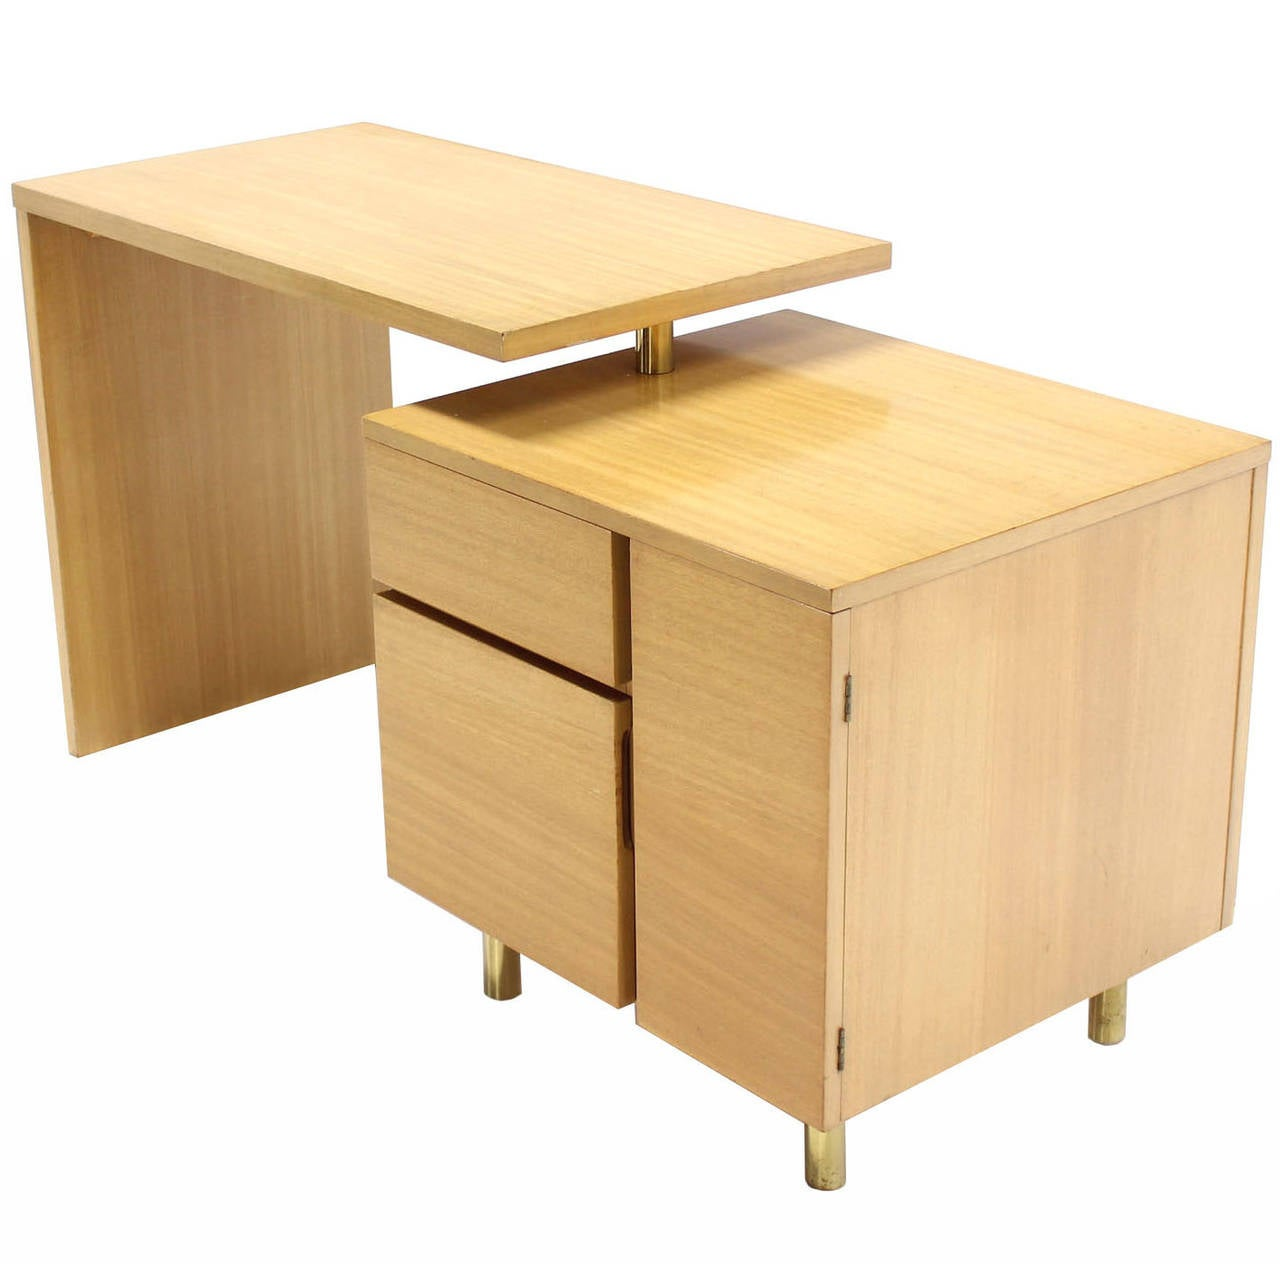 Revolving Folding Mid-Century Modern Desk Writing Table Cabinet Hide Away